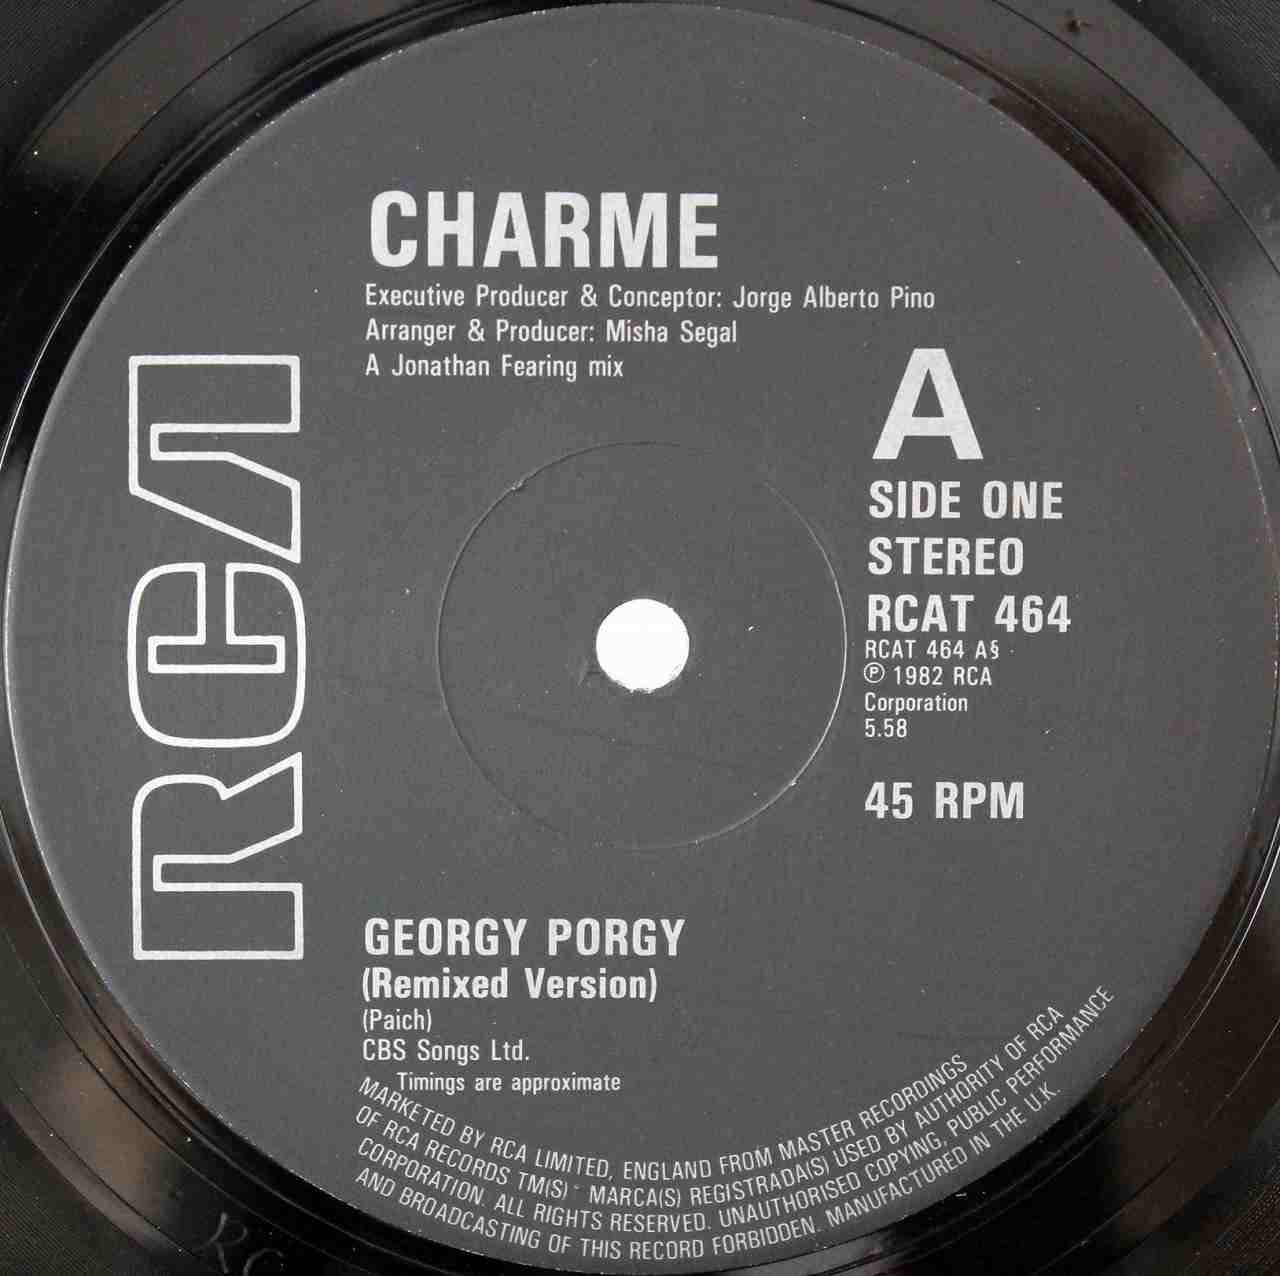 CHARME Feat LUTHER VANDROSS - Georgy Porgy 03